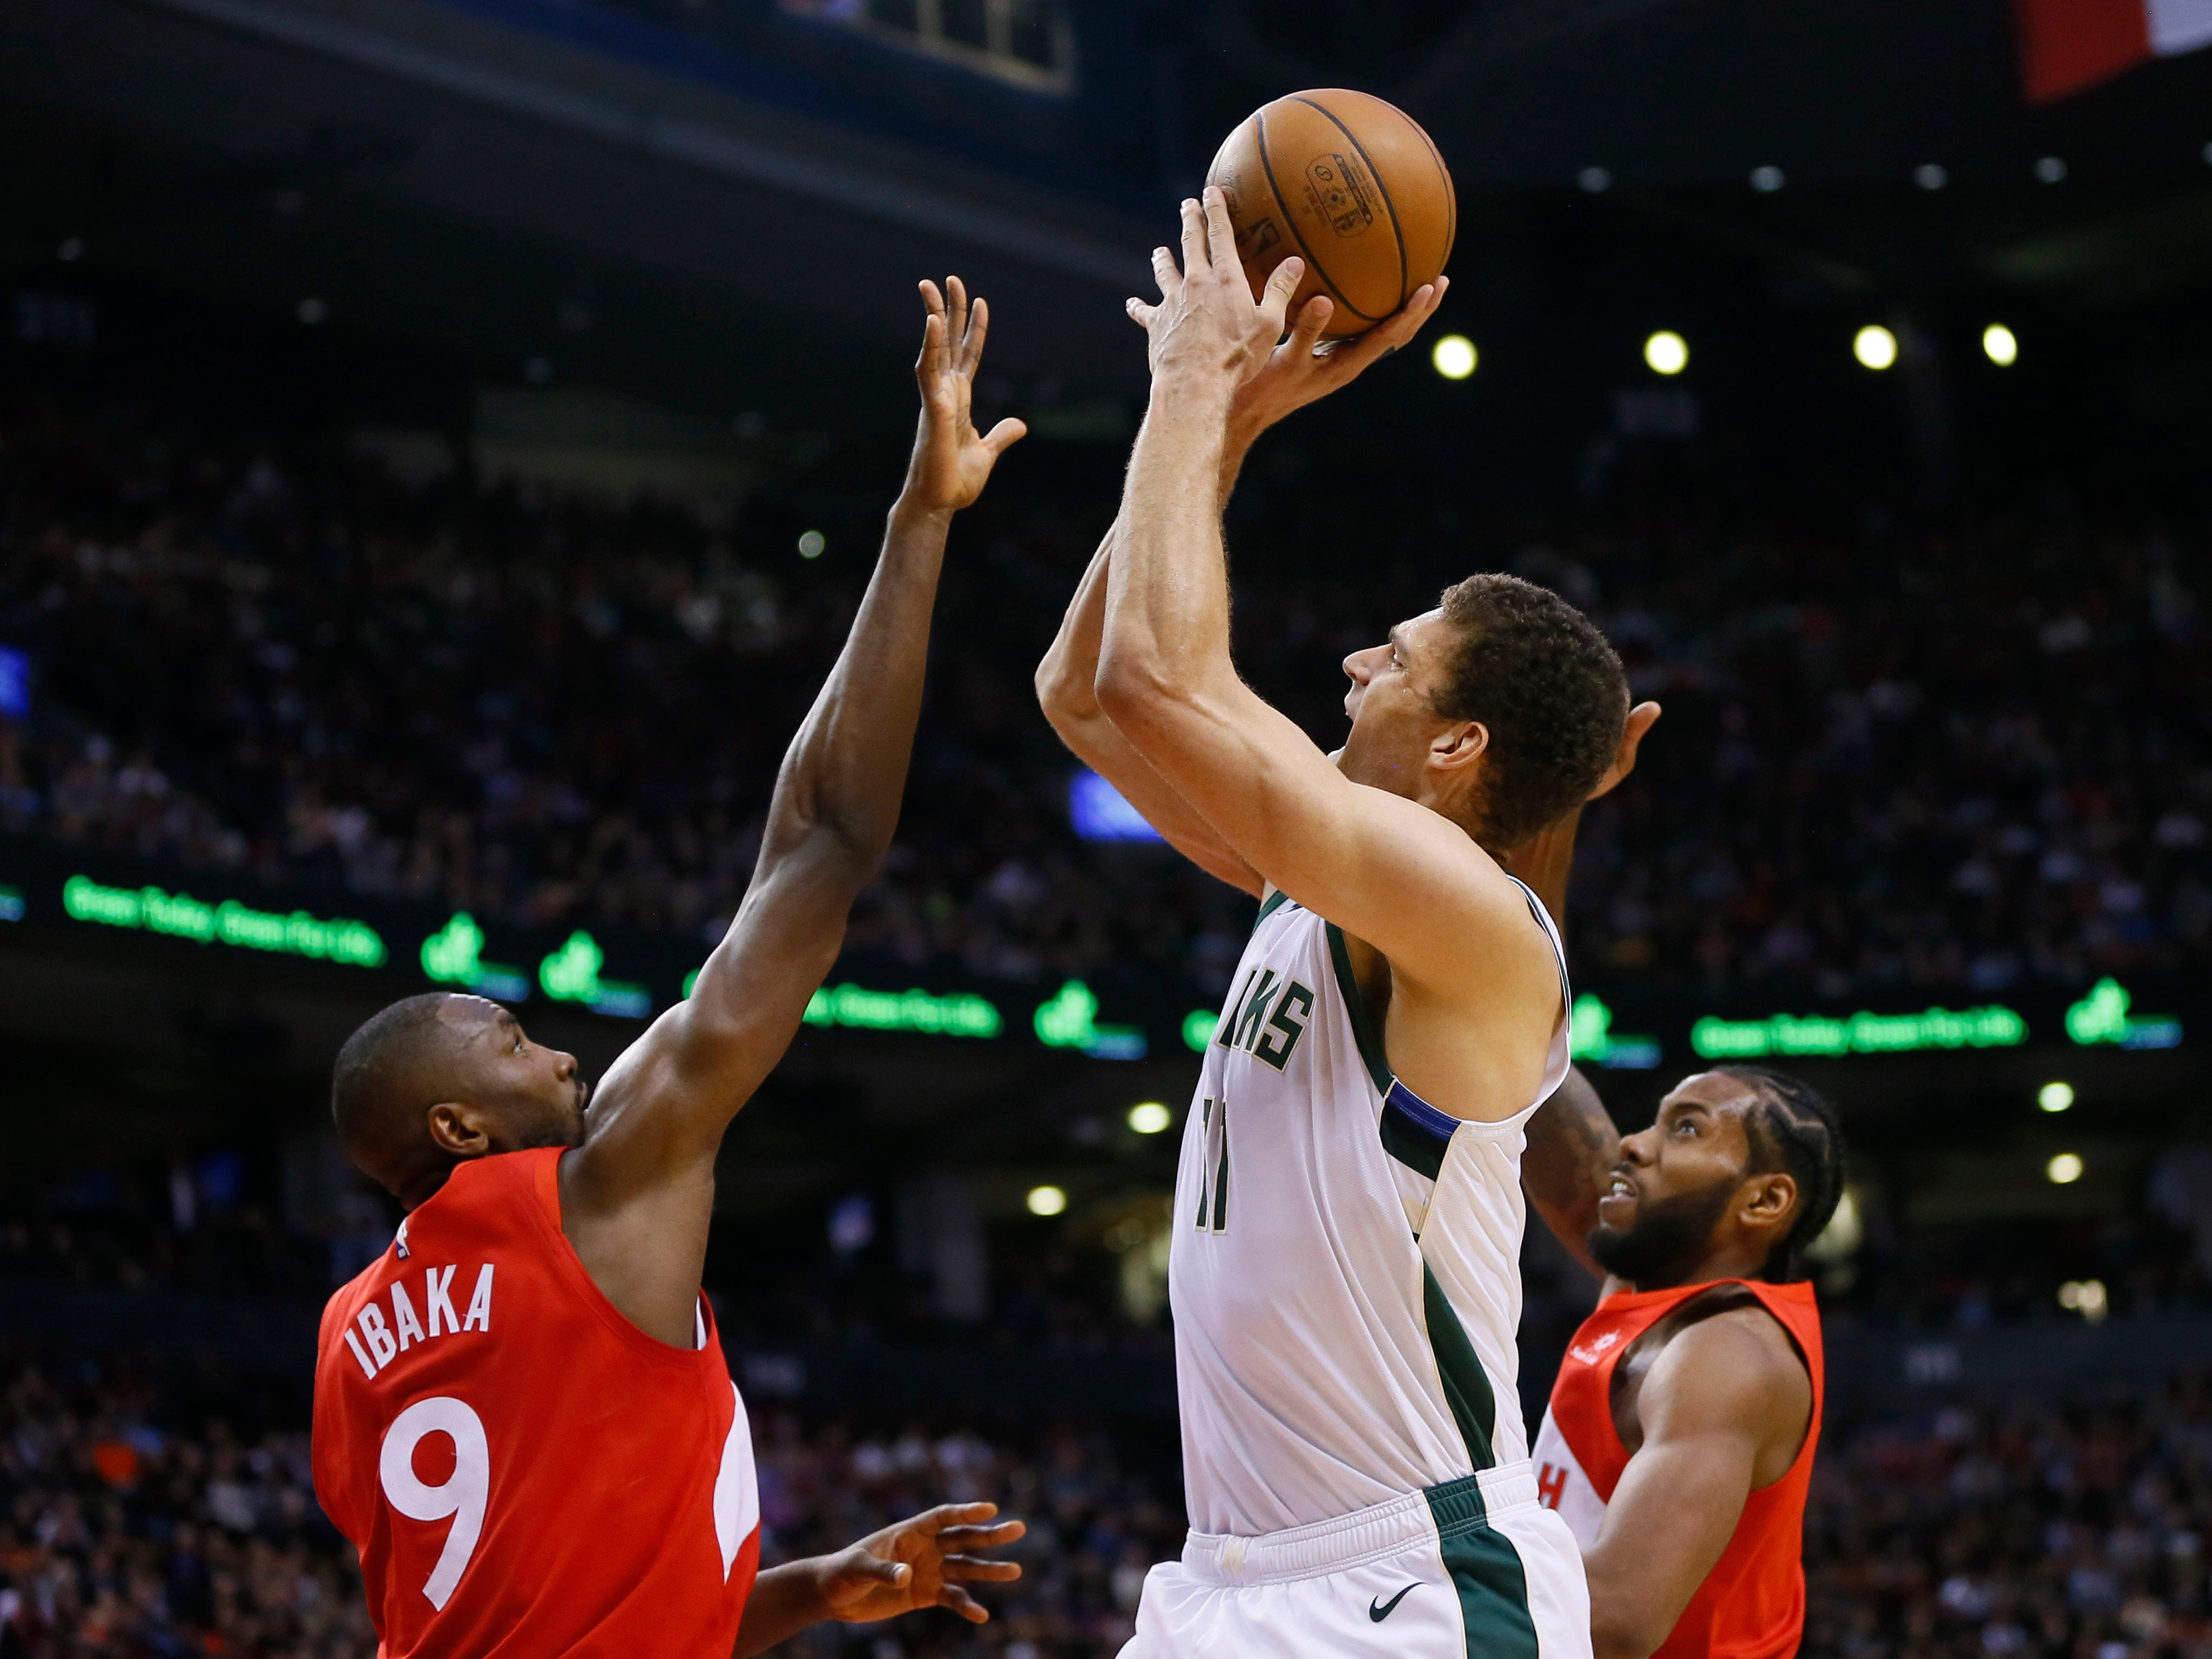 Bucks center Brook Lopez puts up and hits a big shot late in the game over Raptors forward Serge Ibaka on Thursday night.